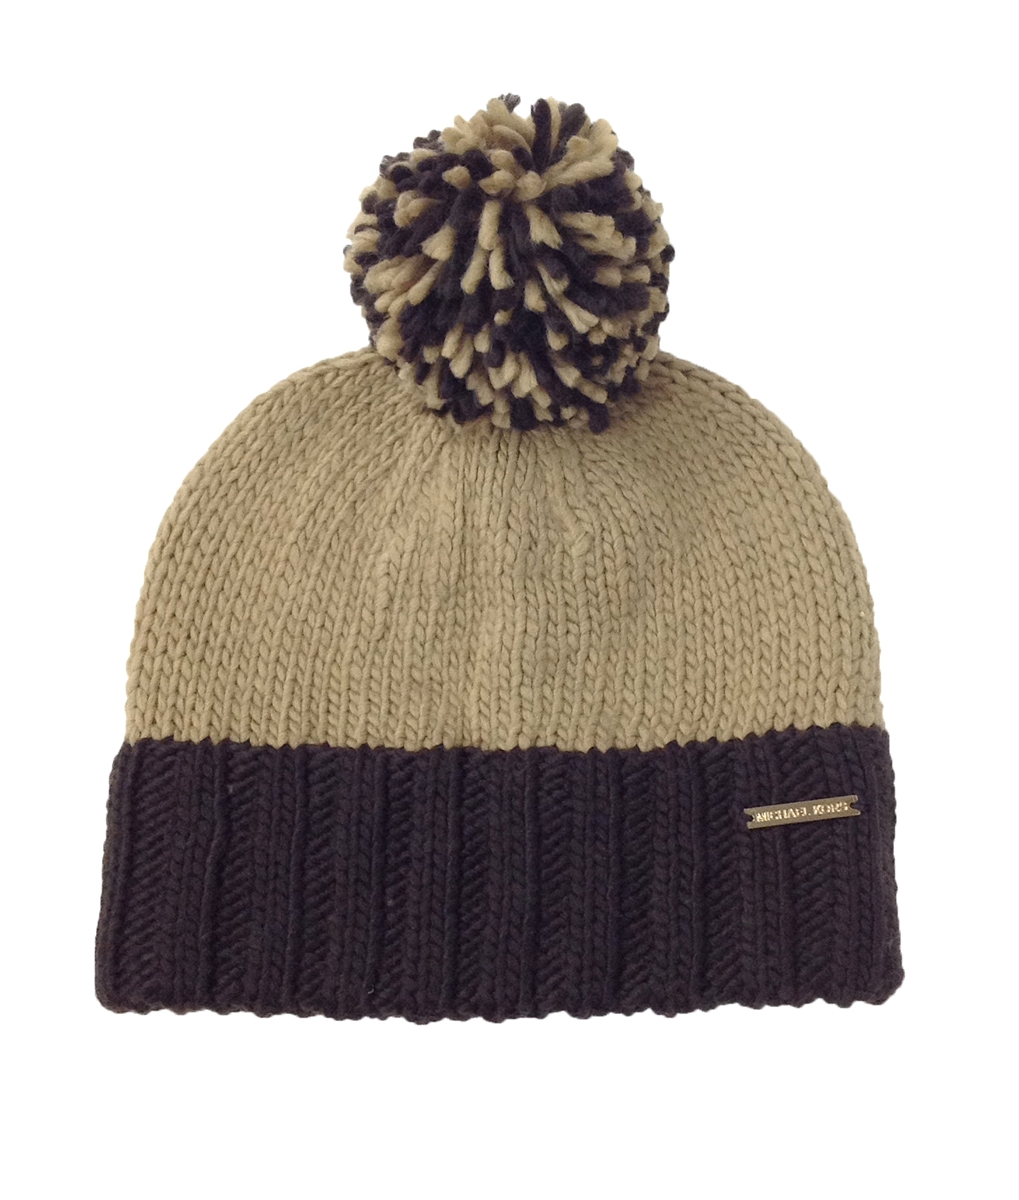 Michael Kors Women s Colorblock Pom-Pom Knit Skull Hat c29d36bc581